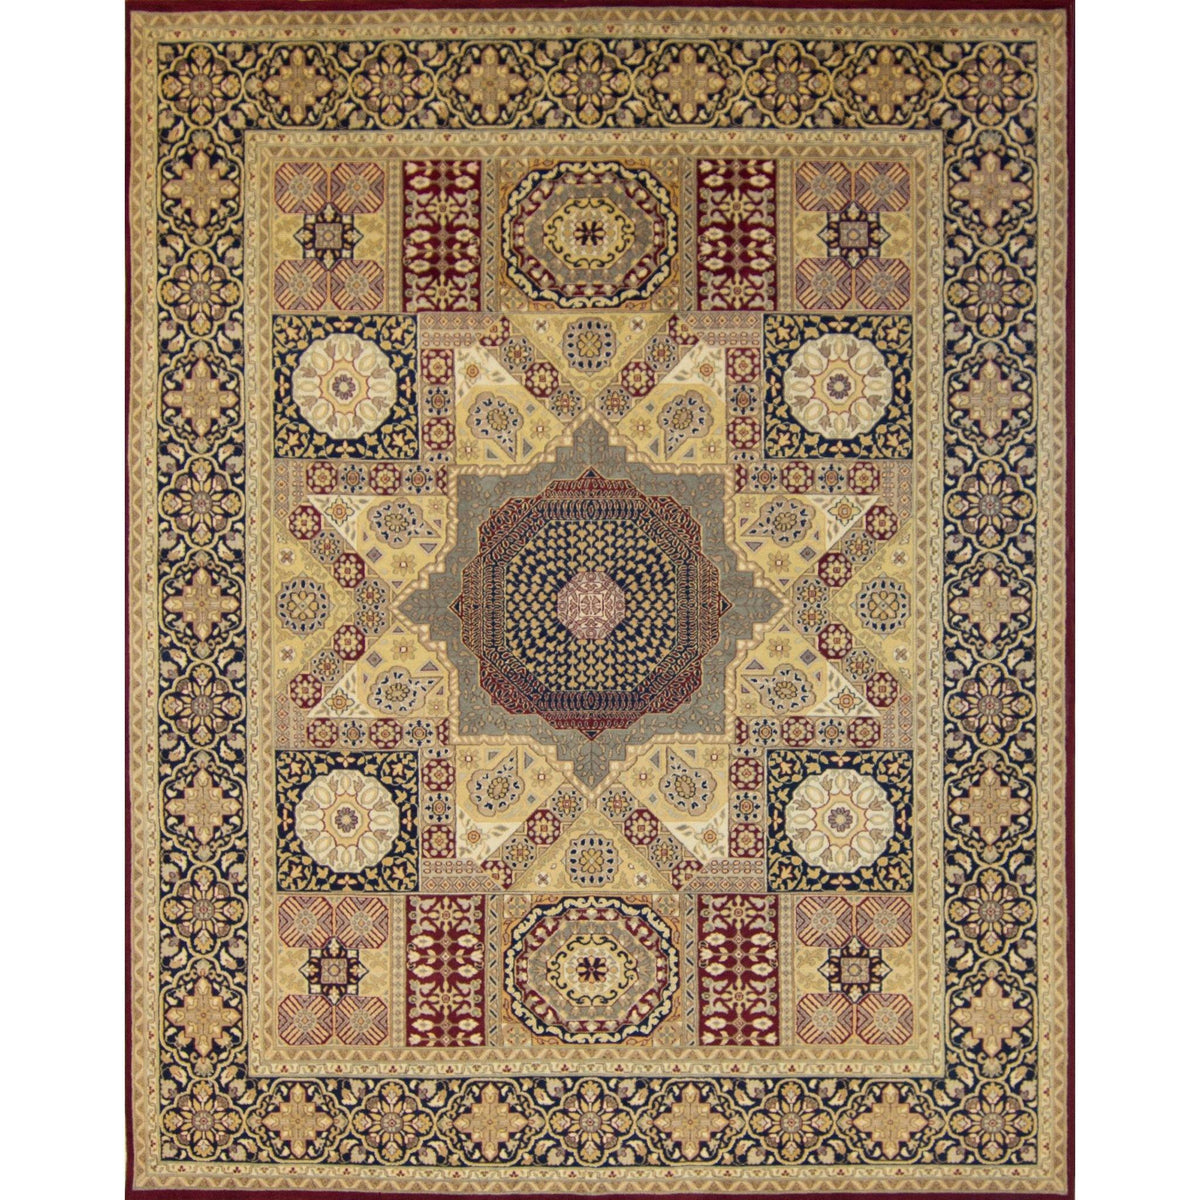 Fine Hand-knotted Kerman Rug 247cm x 317cm Persian-Rug | House-of-Haghi | NewMarket | Auckland | NZ | Handmade Persian Rugs | Hand Knotted Persian Rugs